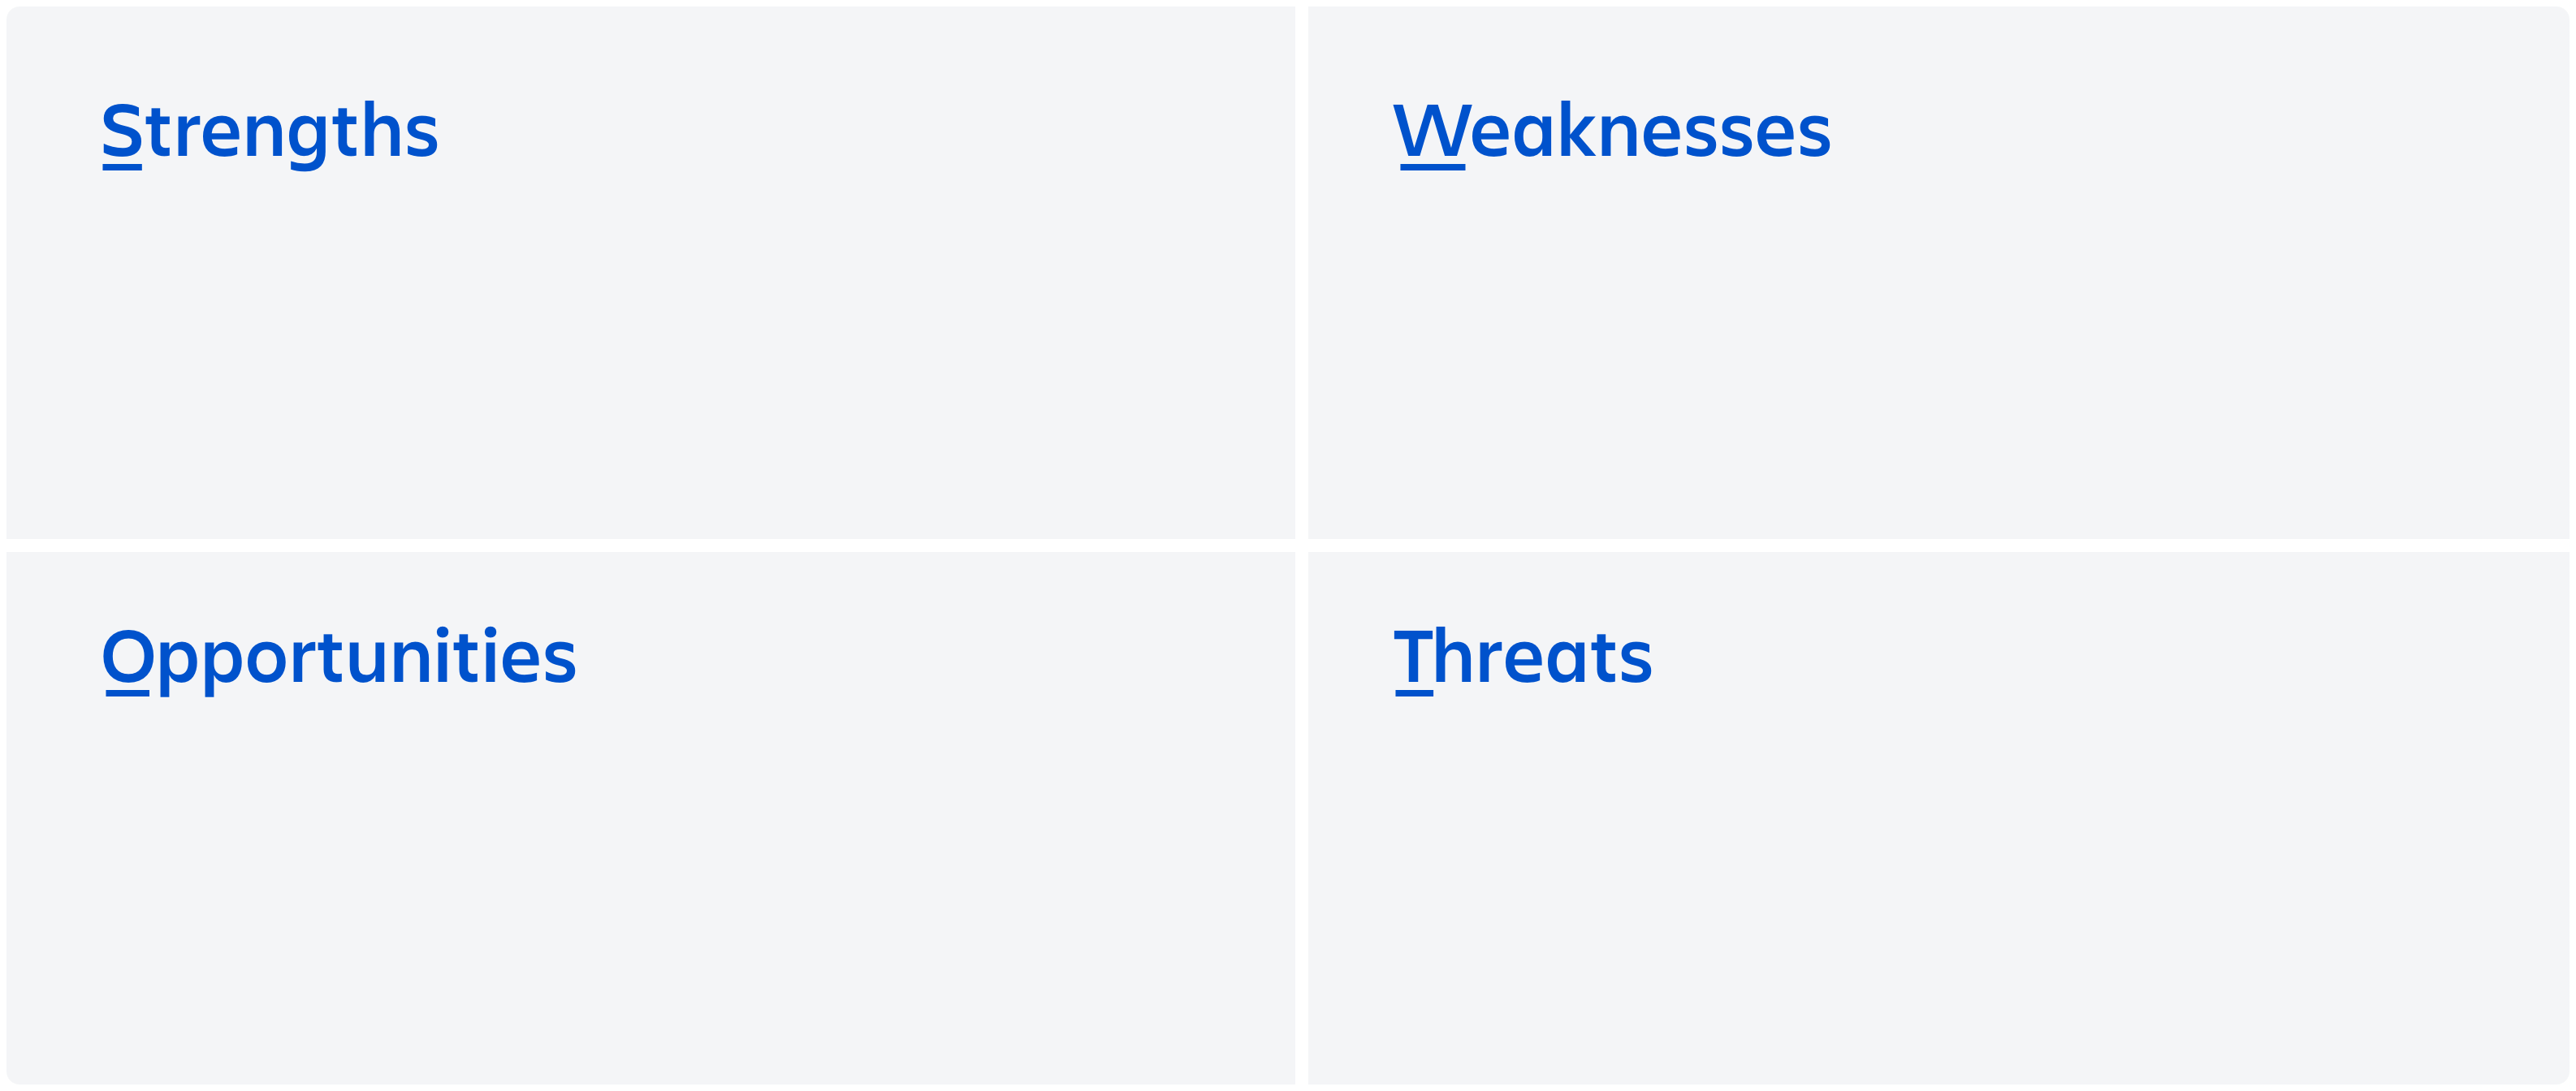 SWOT diagram - strengths, weaknesses, opportunities, and threats